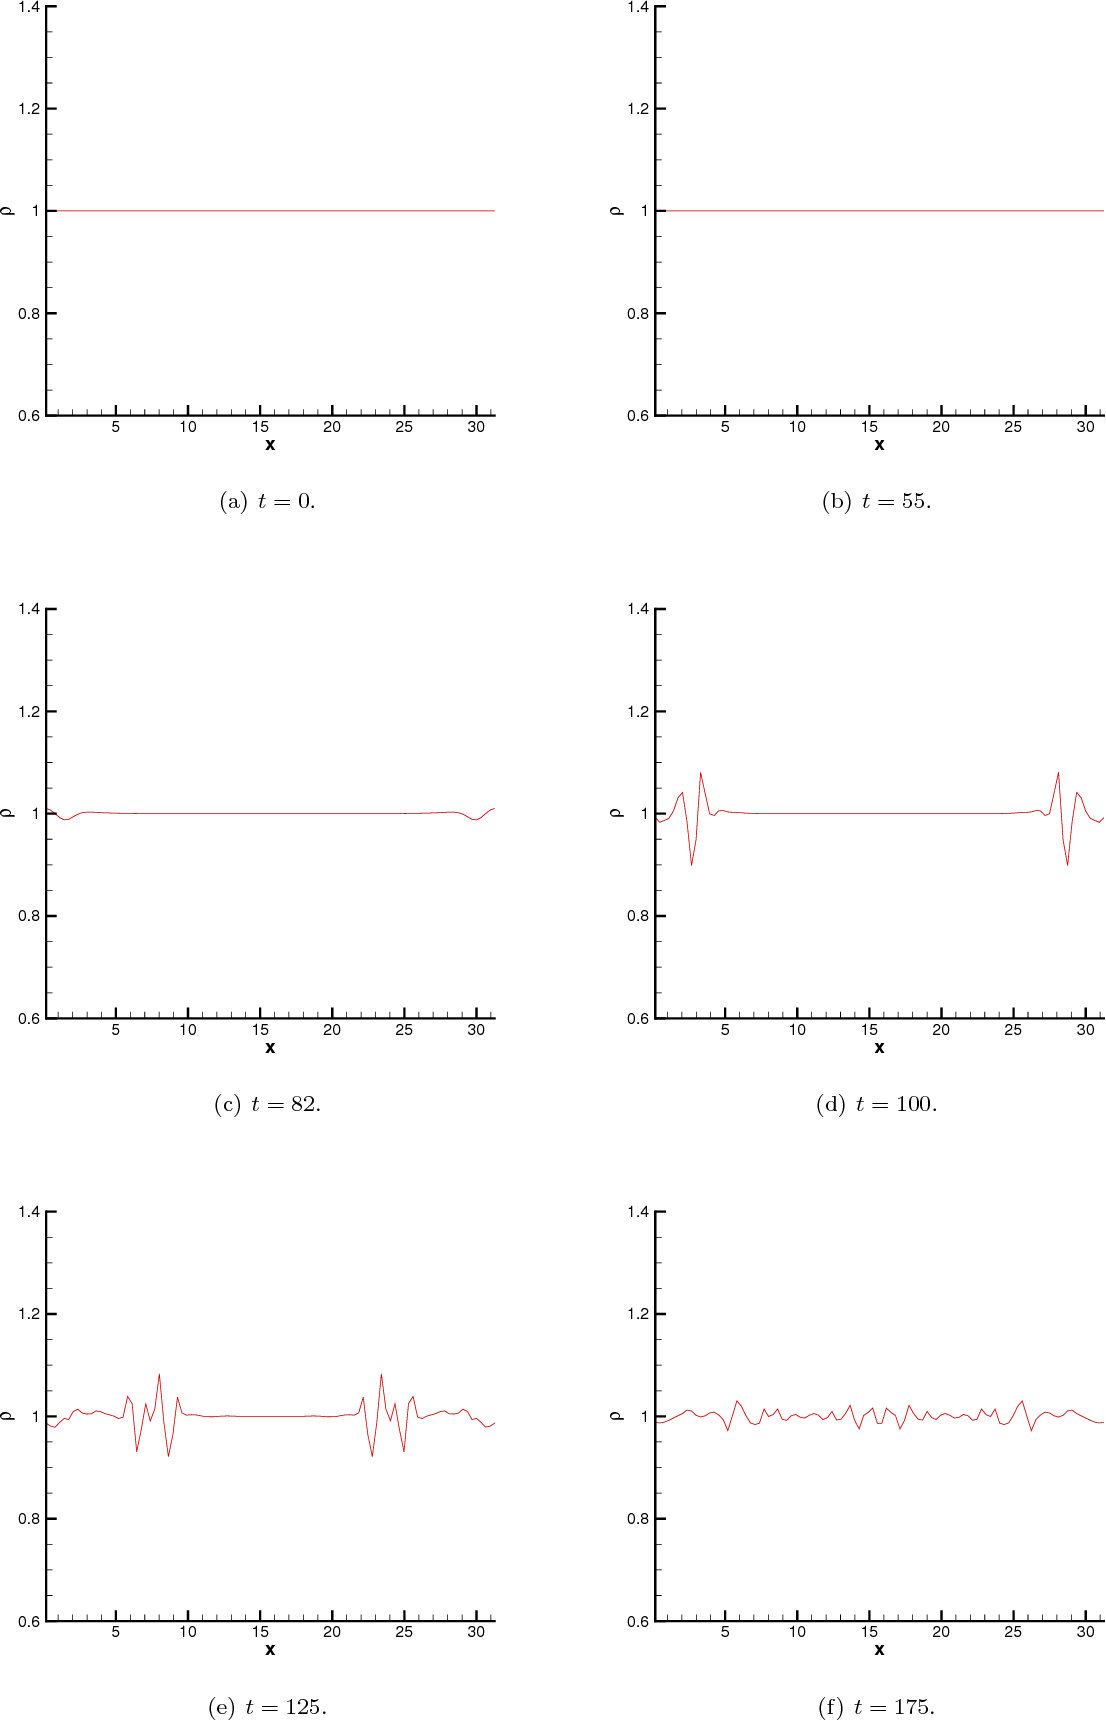 Fig. 5.13. Plots of the computed density function ρh for the streaming Weibel instability, with parameter choice 2 as in [9] (δ = 1/6, v0,1 = 0.5, v0,2 = 0.1, k0 = 0.2), at selected time t.The mesh is 1003 with piecewise quadratic polynomials. The upwind flux is applied. 31